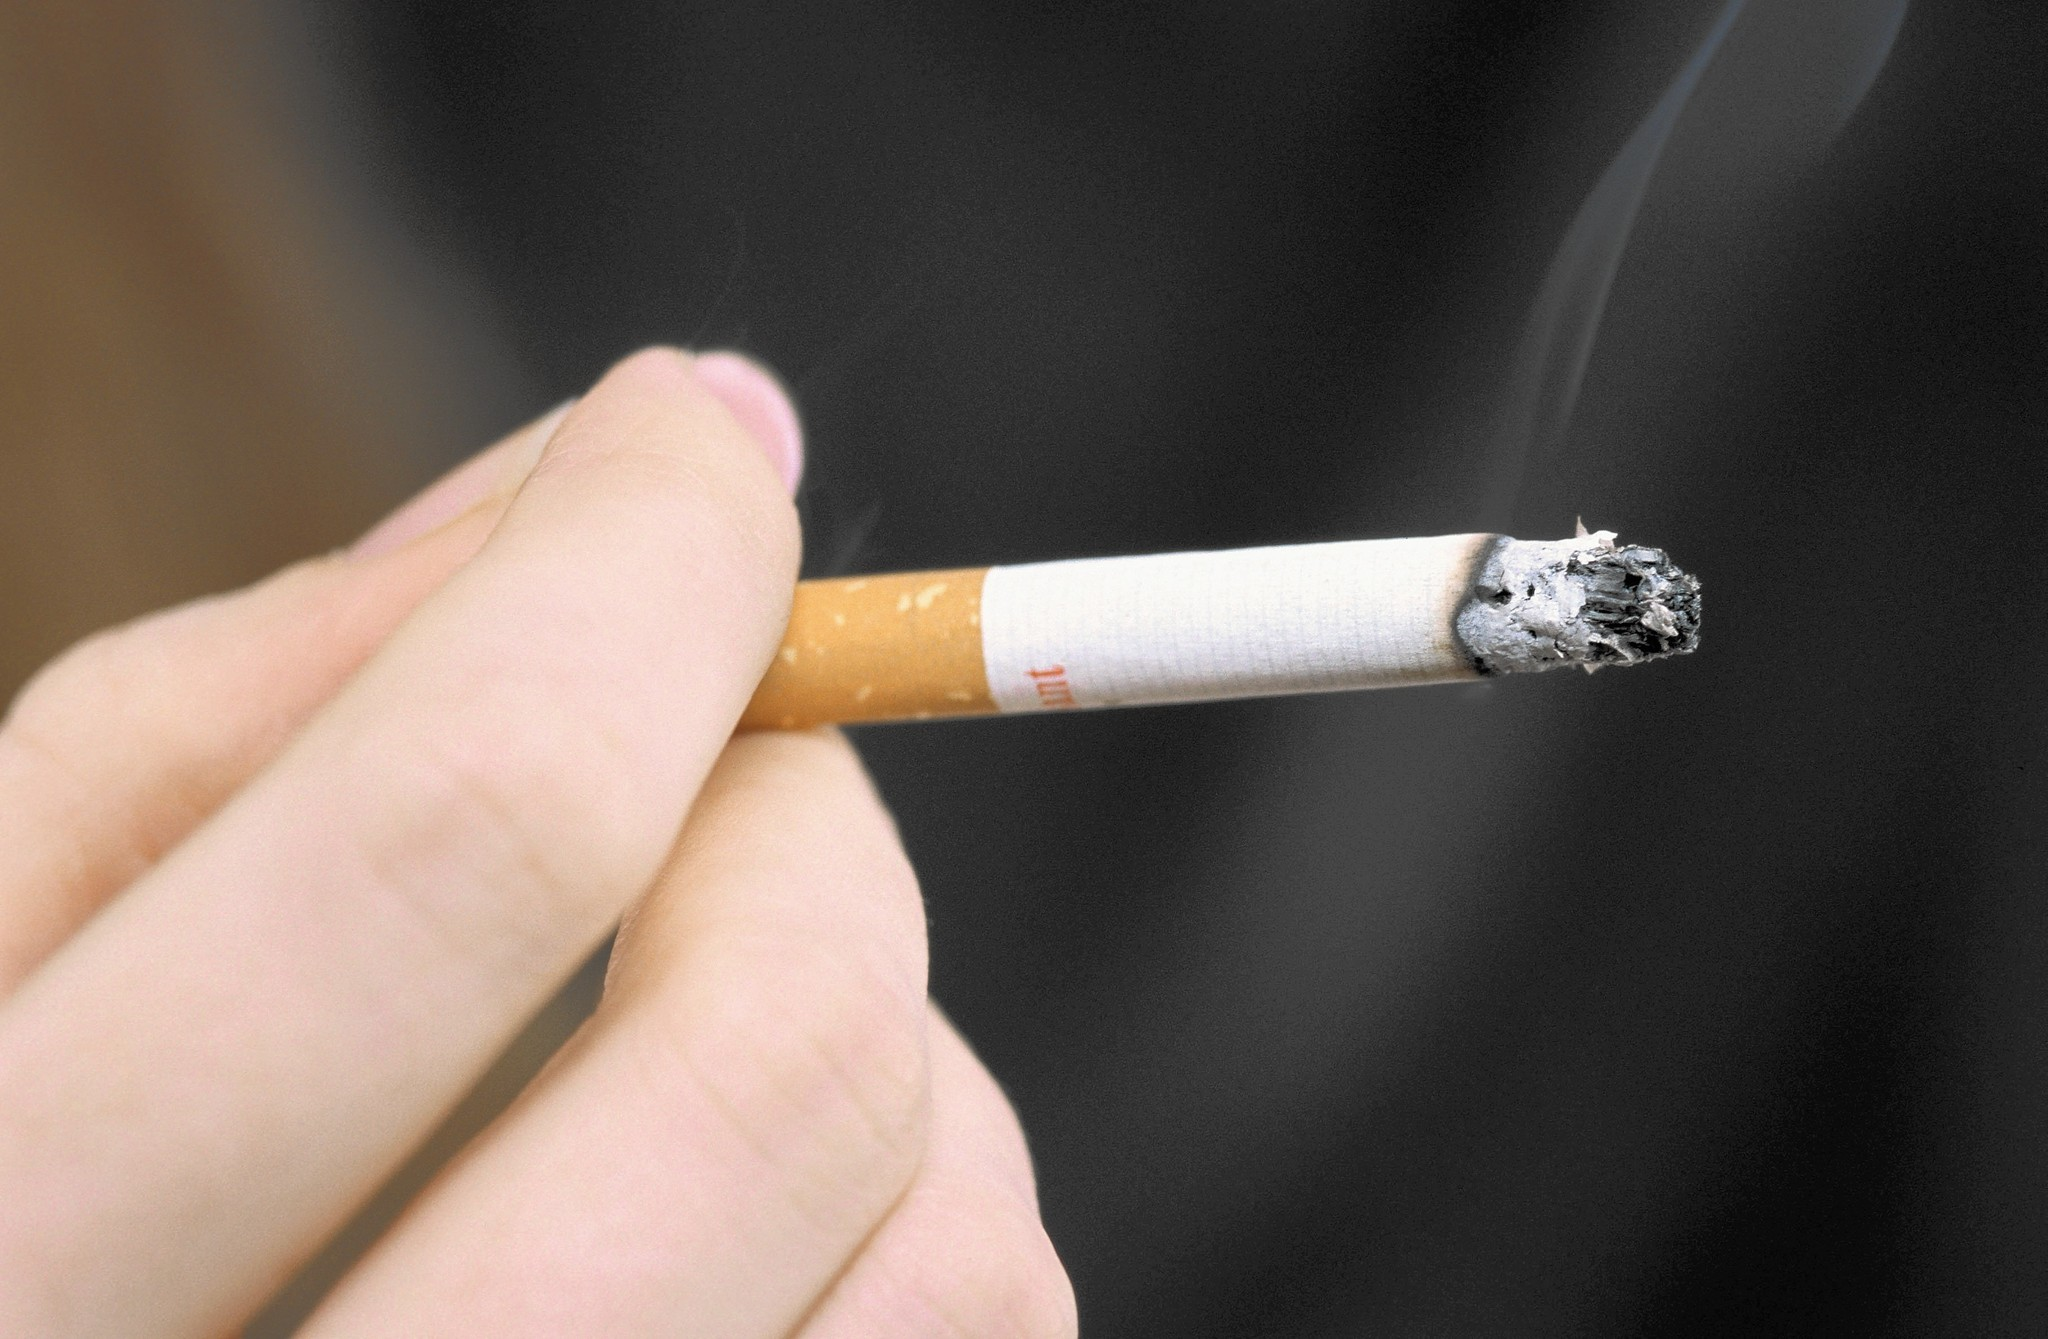 Cigarettes flame out as more Americans quit smoking